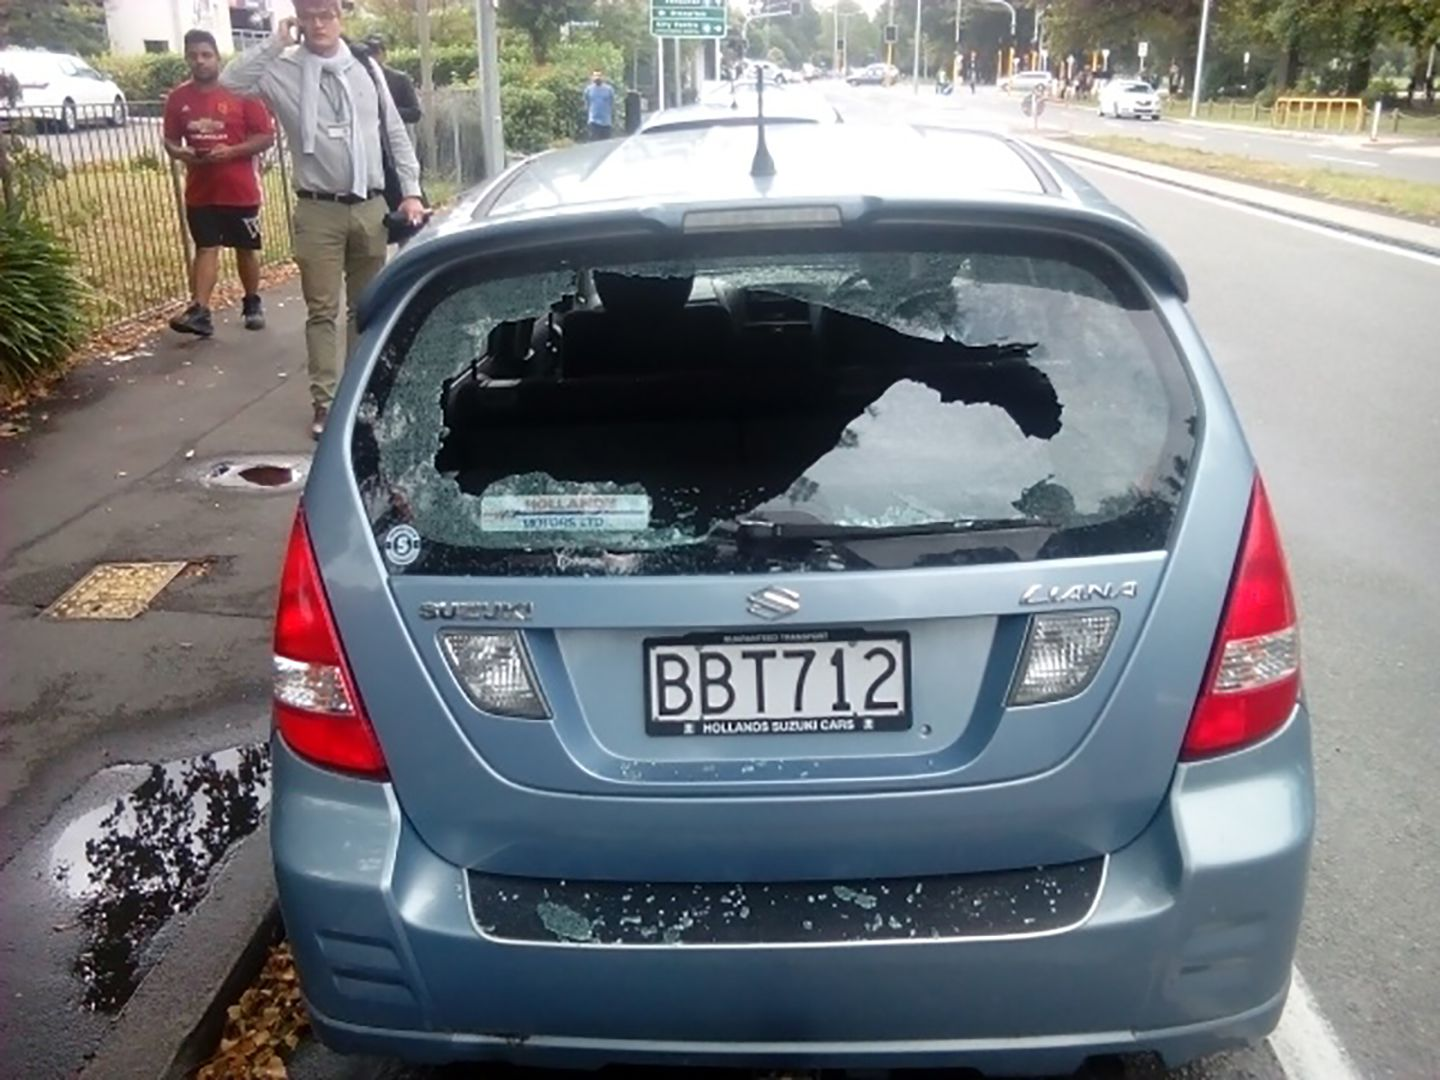 A car with shattered windows near the mosque in Christchurch.